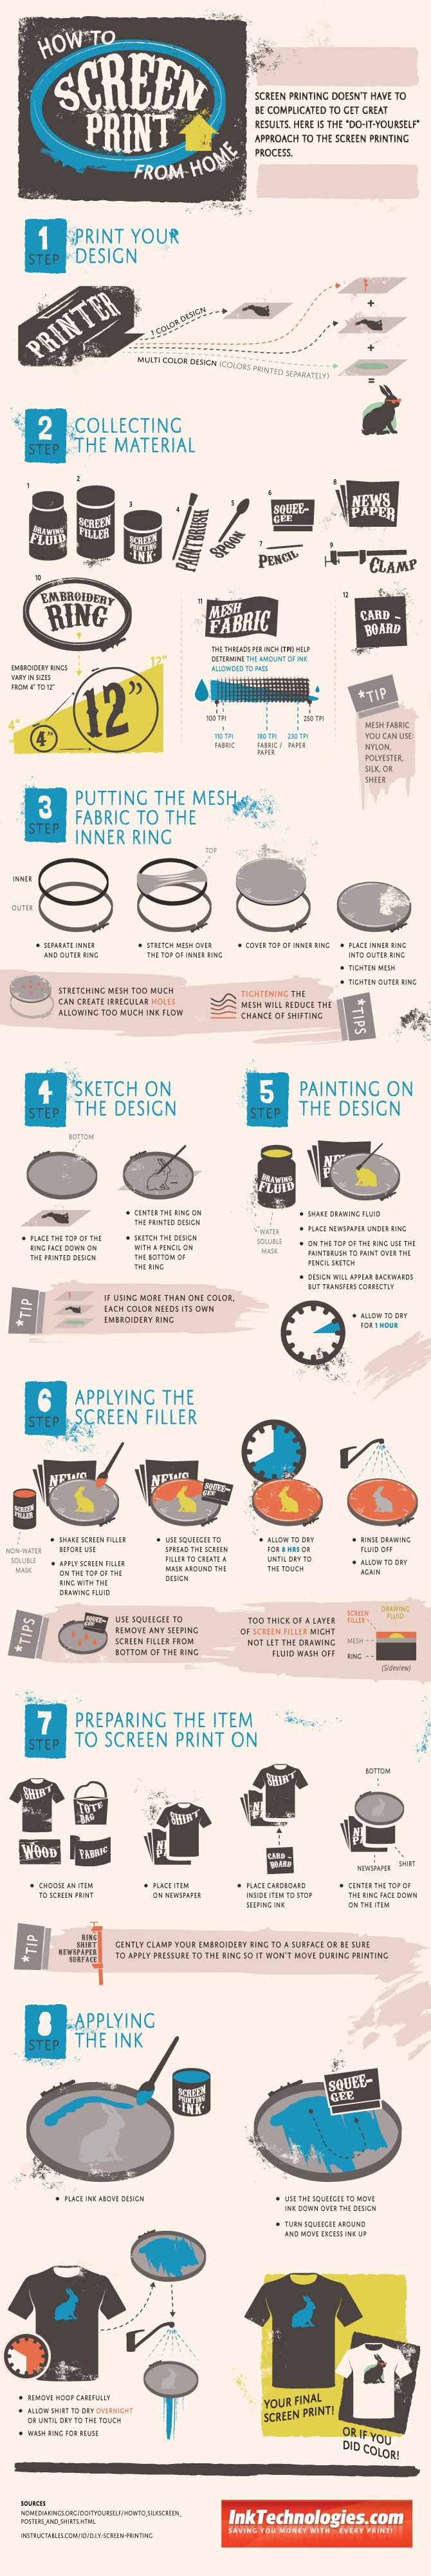 From Lifehack - How to Screen Print at Home in 8 Easy Steps